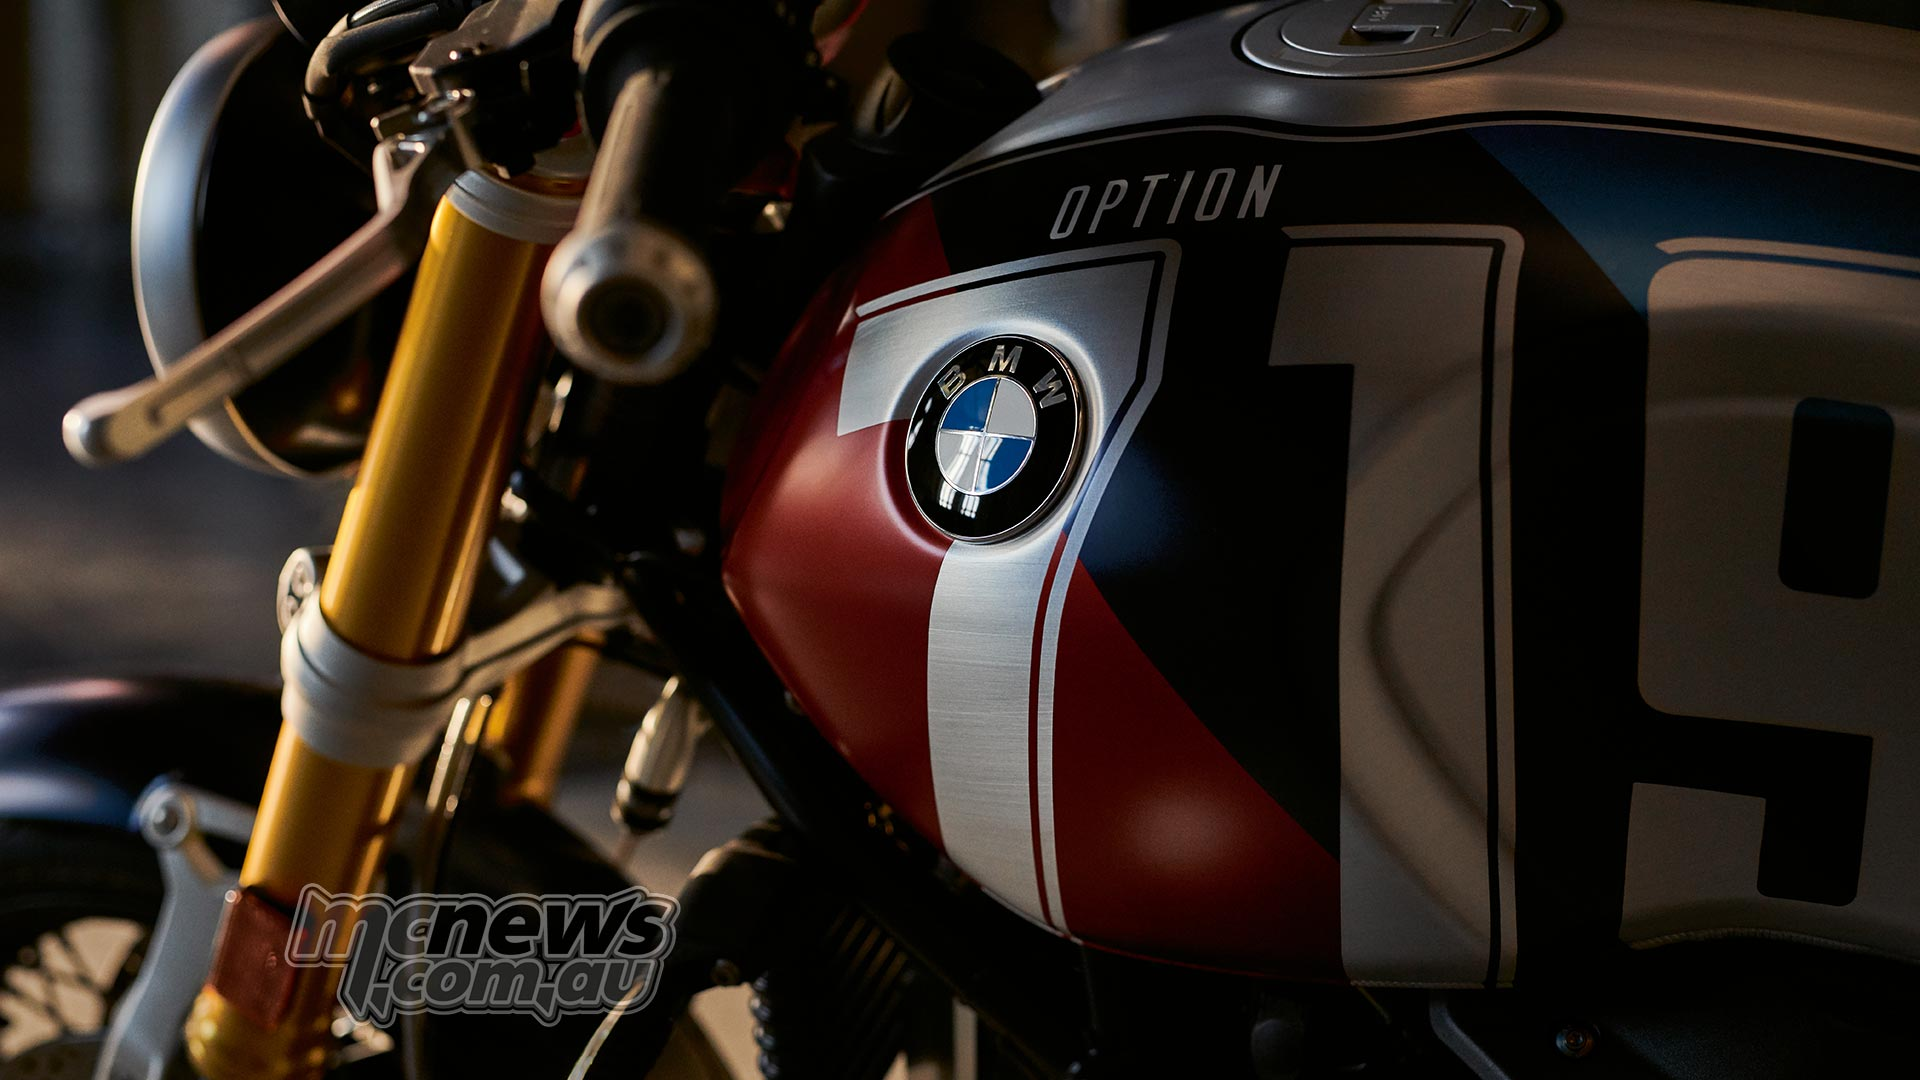 2019 Bmw R Ninet Model Line Up And Changes The Top Of Bikes Rninet Spezial Mars Red Metallic Matt Cosmic Blue